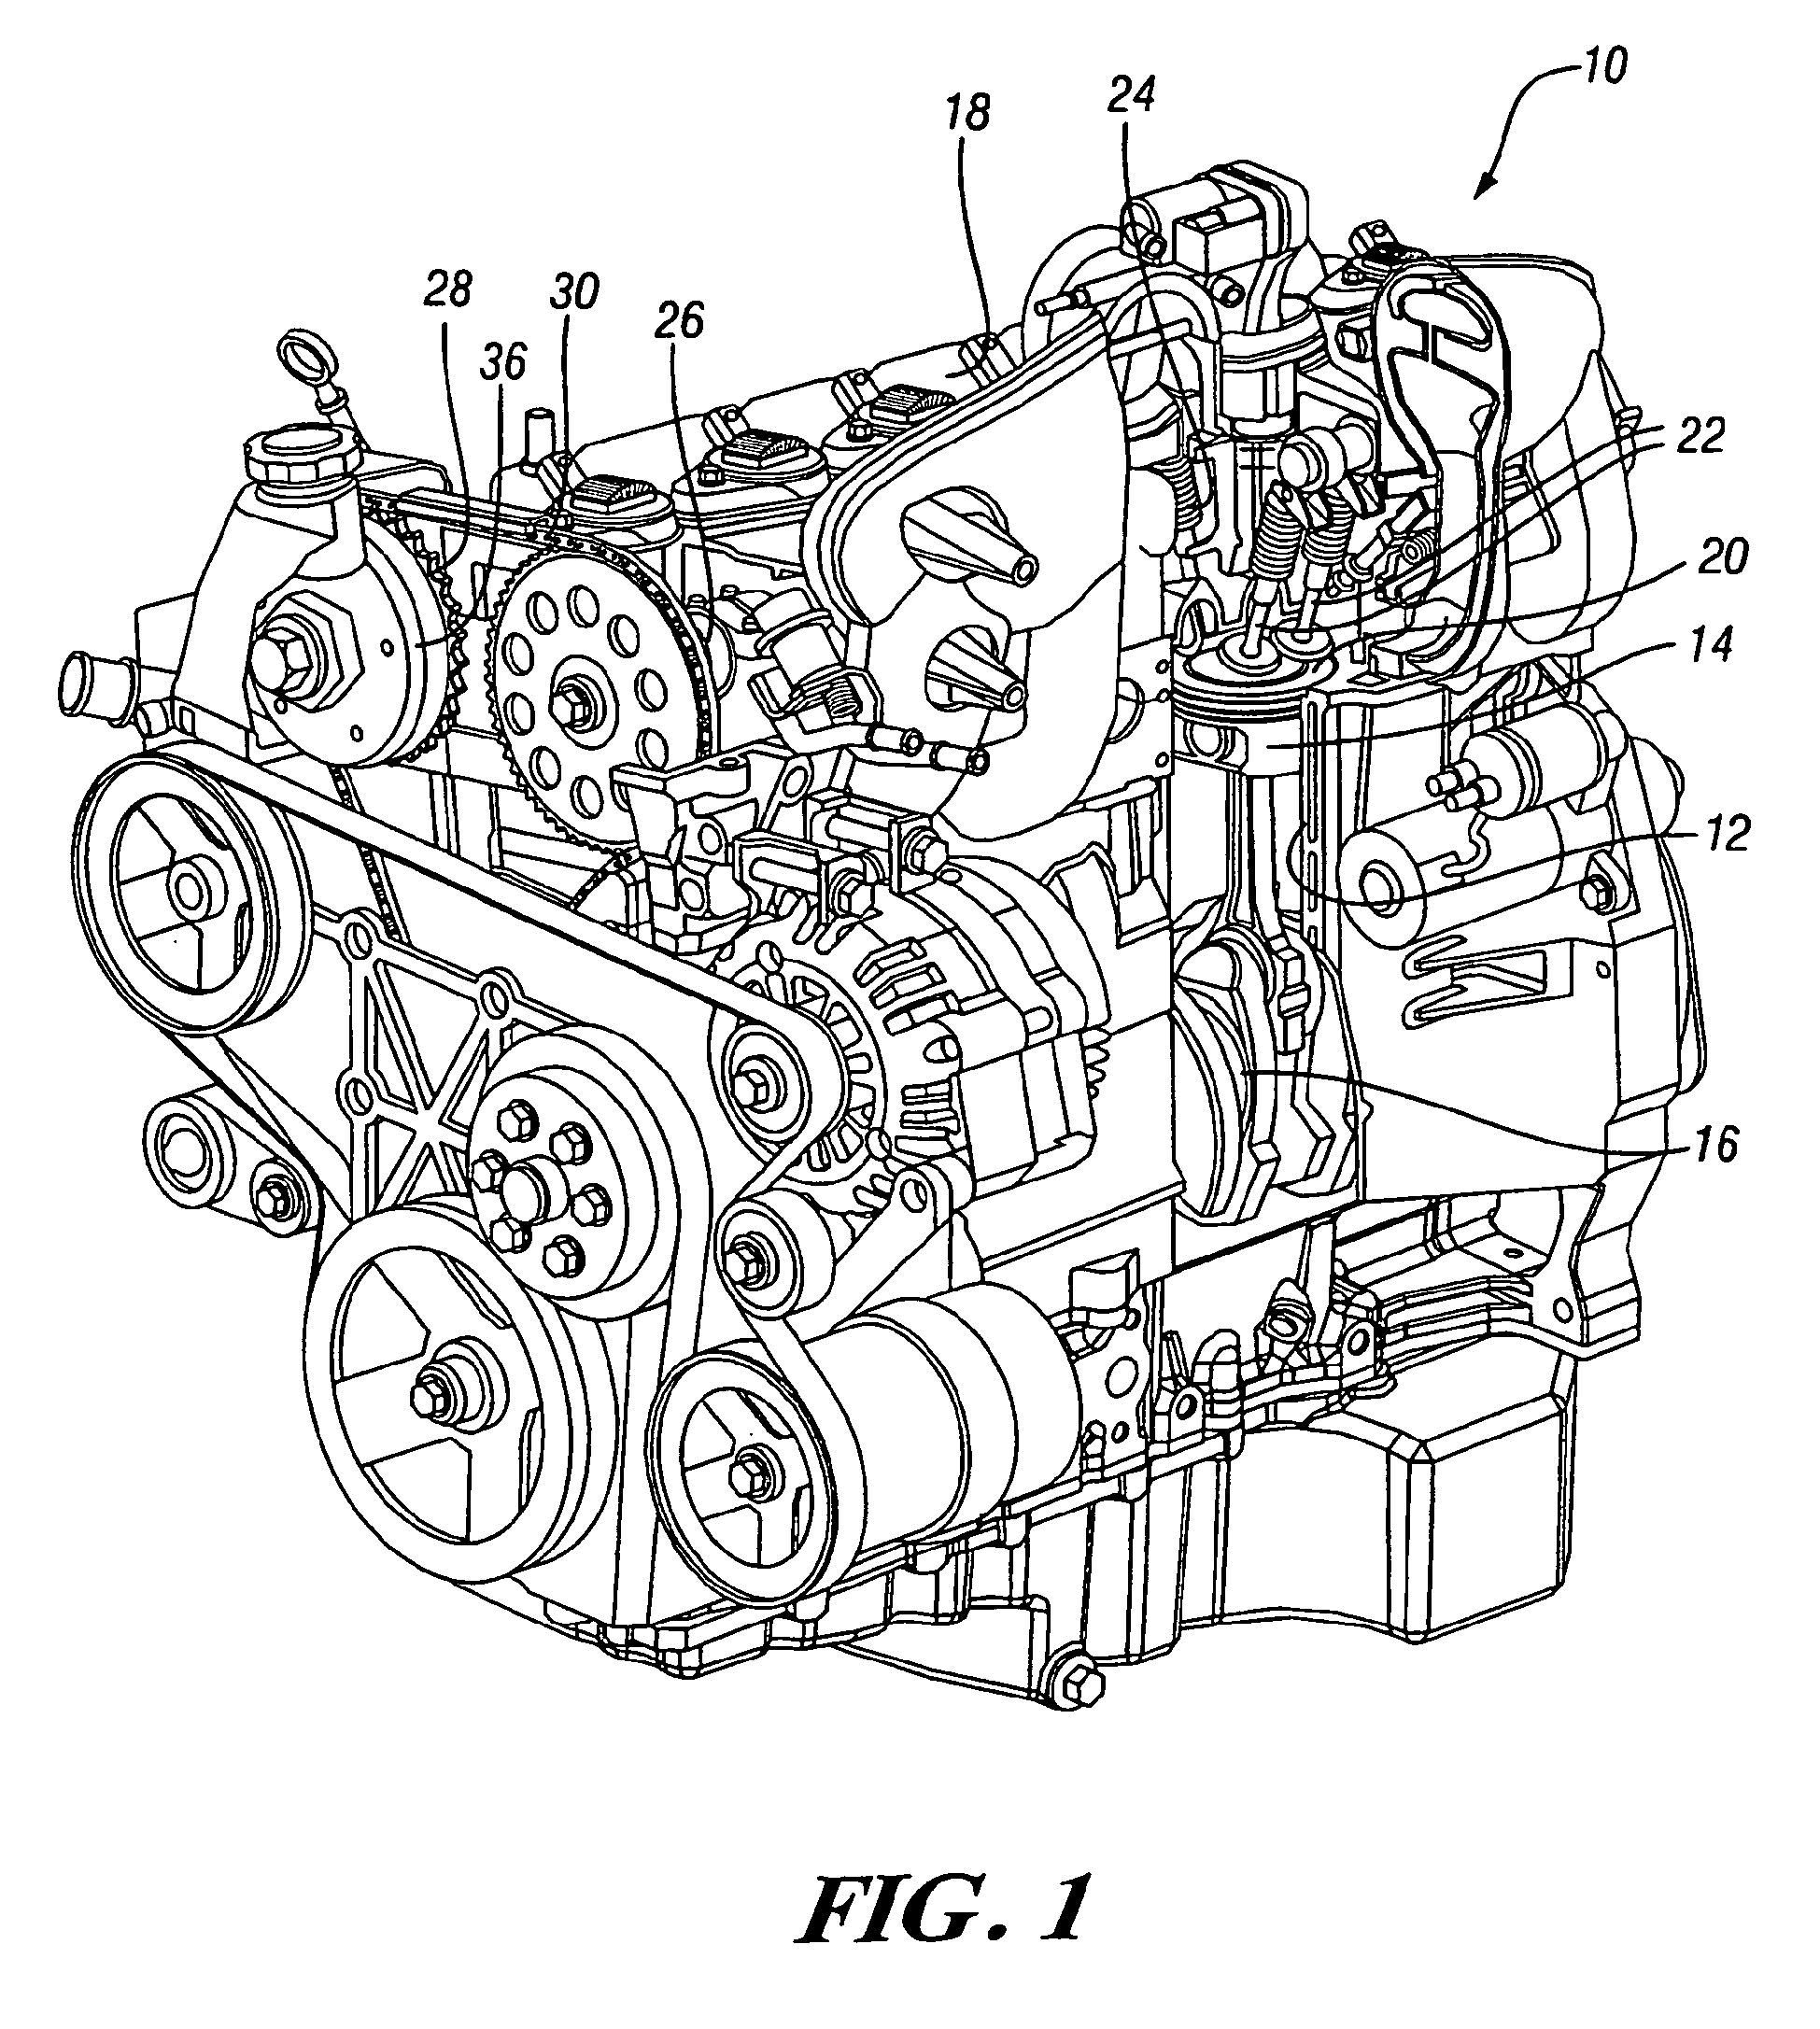 Diesel Engine Drawing At Free For Personal Use 13 Cat Diagram 1949x2173 Cute Labeled Photos